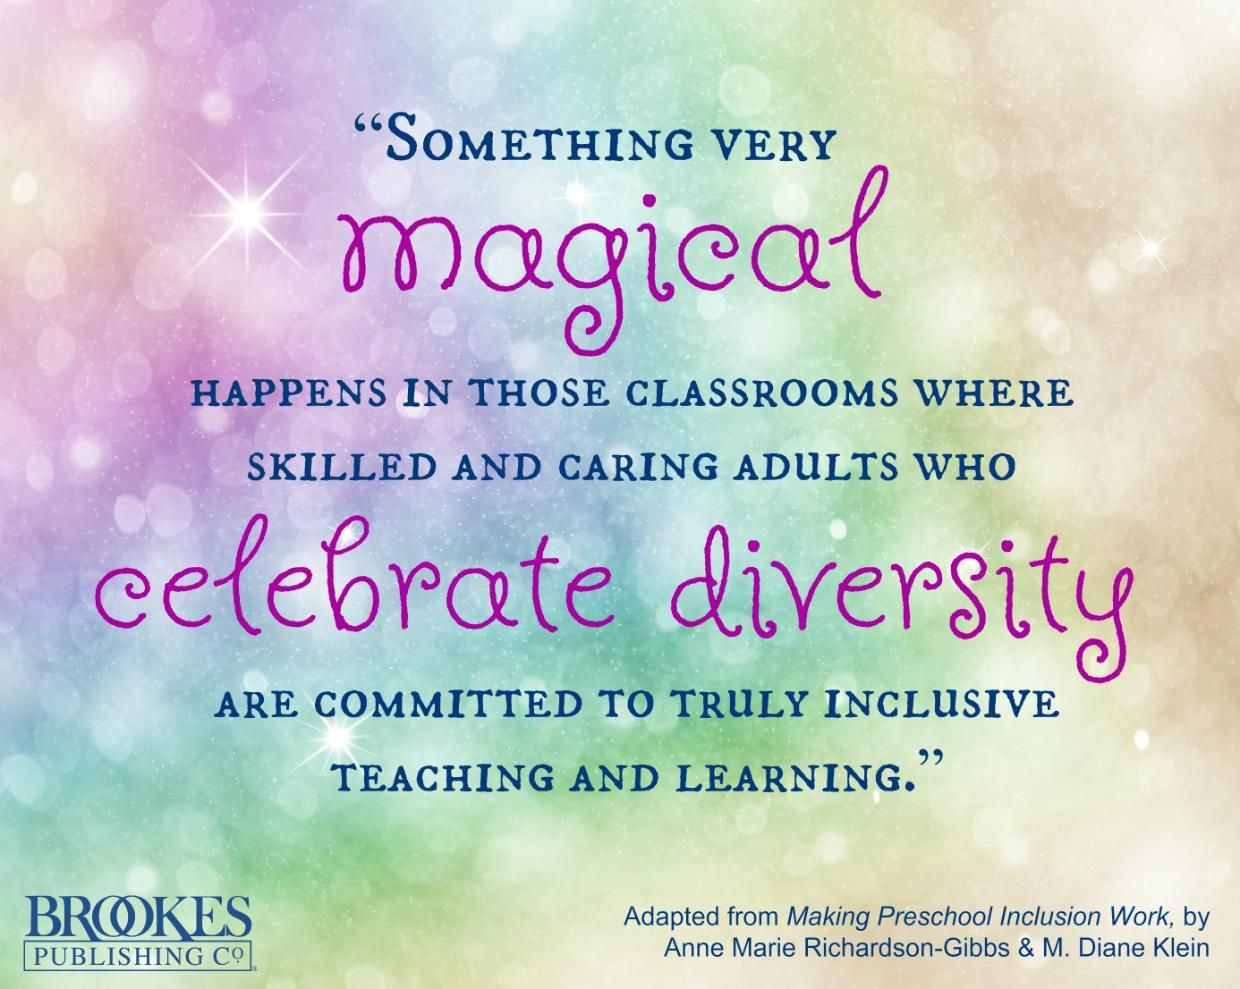 Something magical happens in inclusive classrooms that